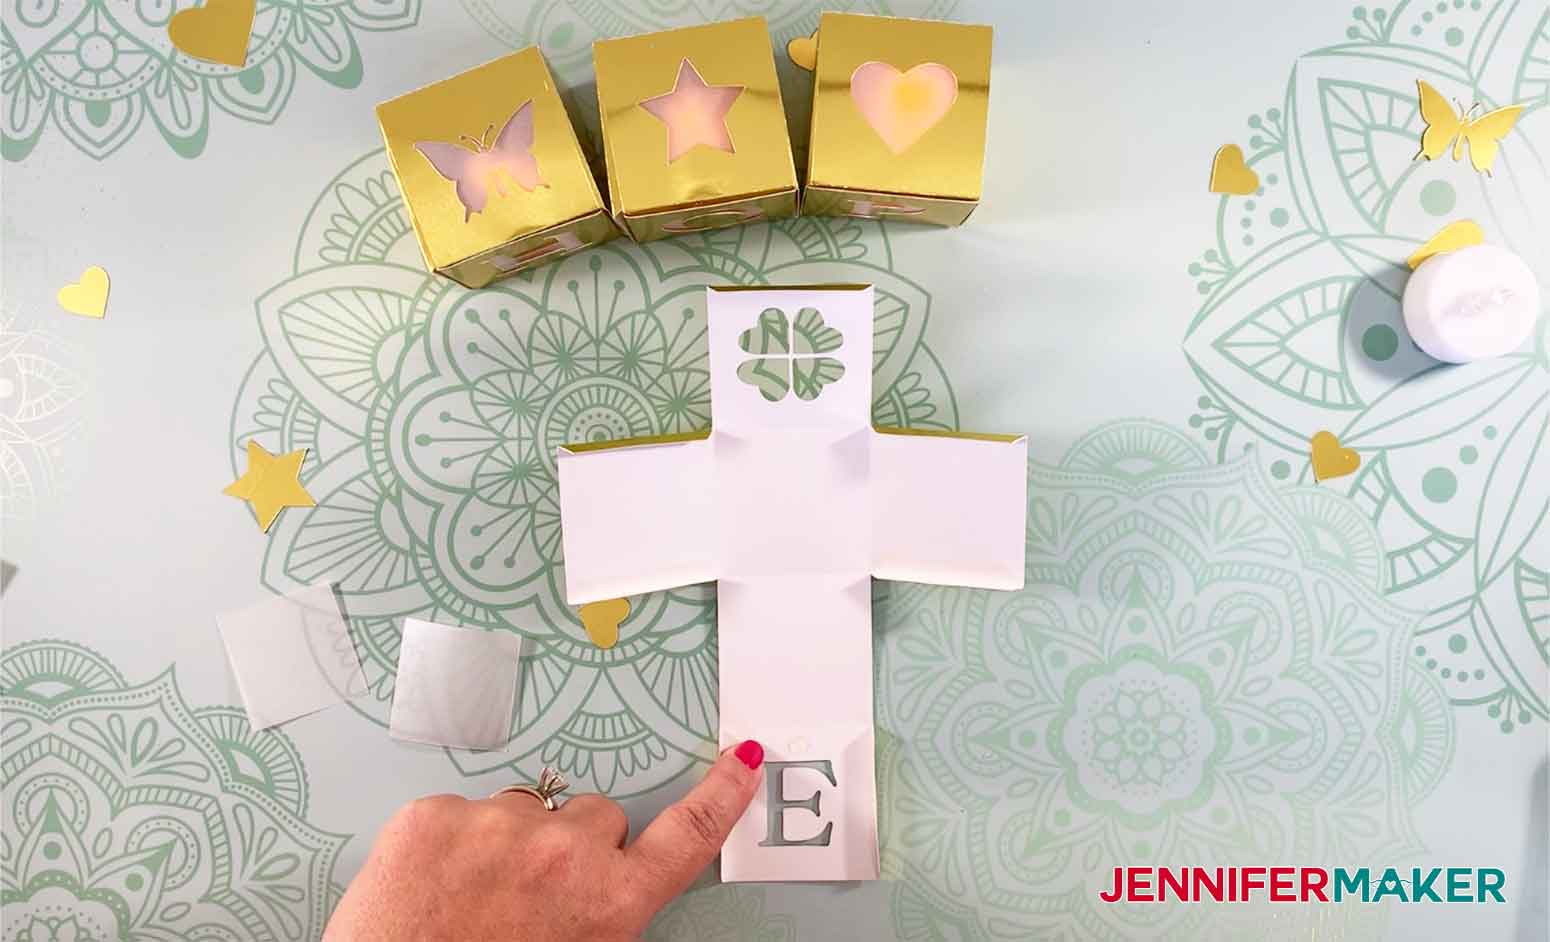 HOPE-Light-Up-Letter-Blocks-JenniferMaker-Glue-Dot-Vellum